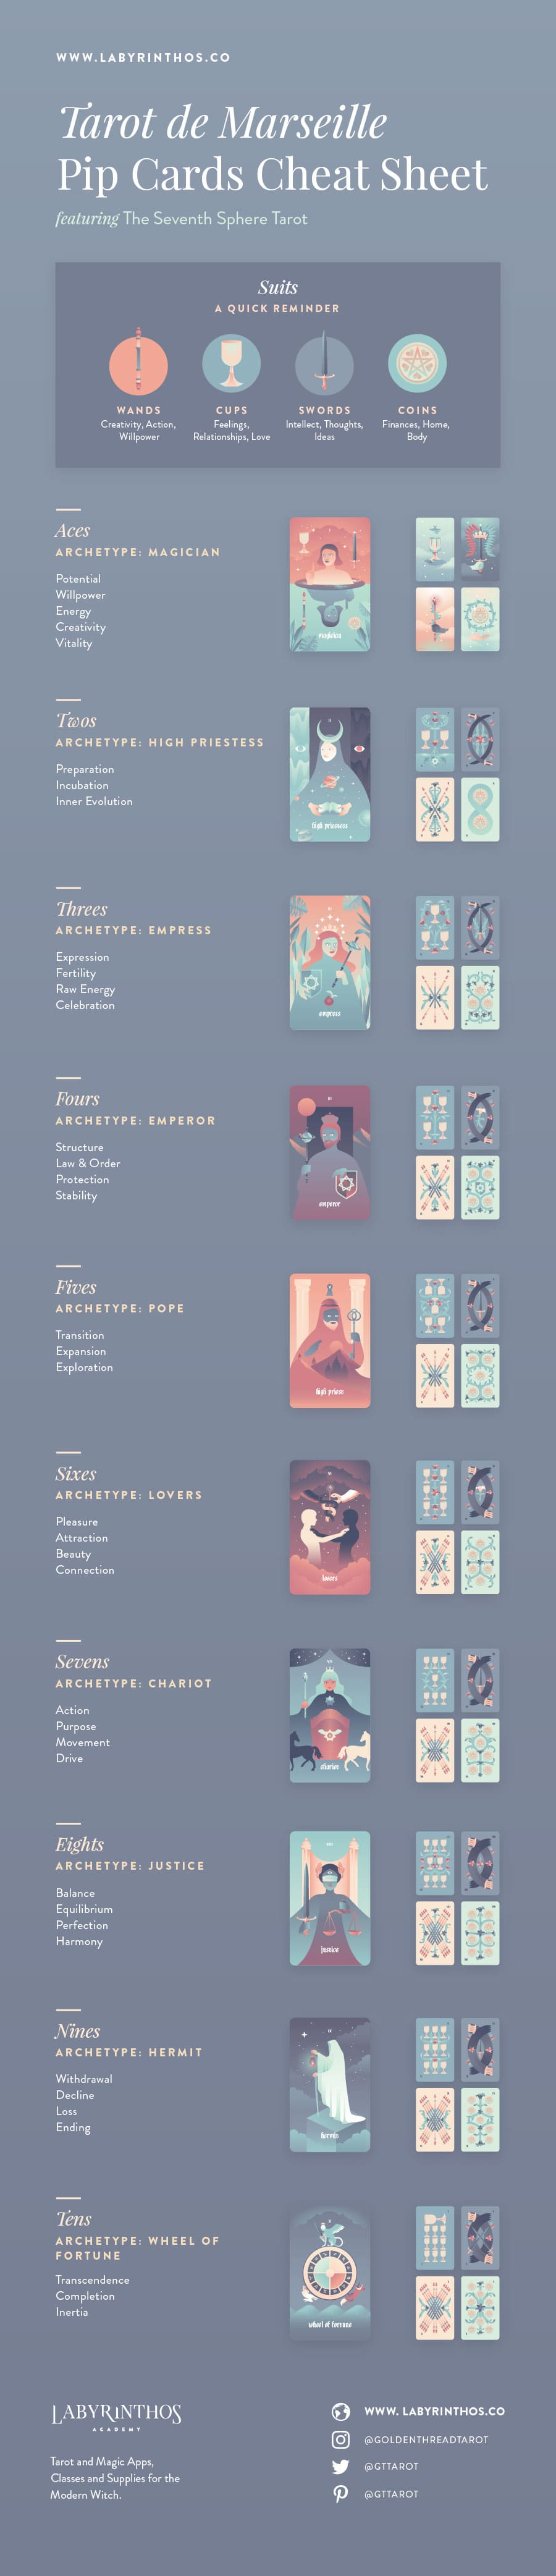 The Minor Arcana of the Tarot de Marseille: A System of Understanding Pip Cards - Full Infographic